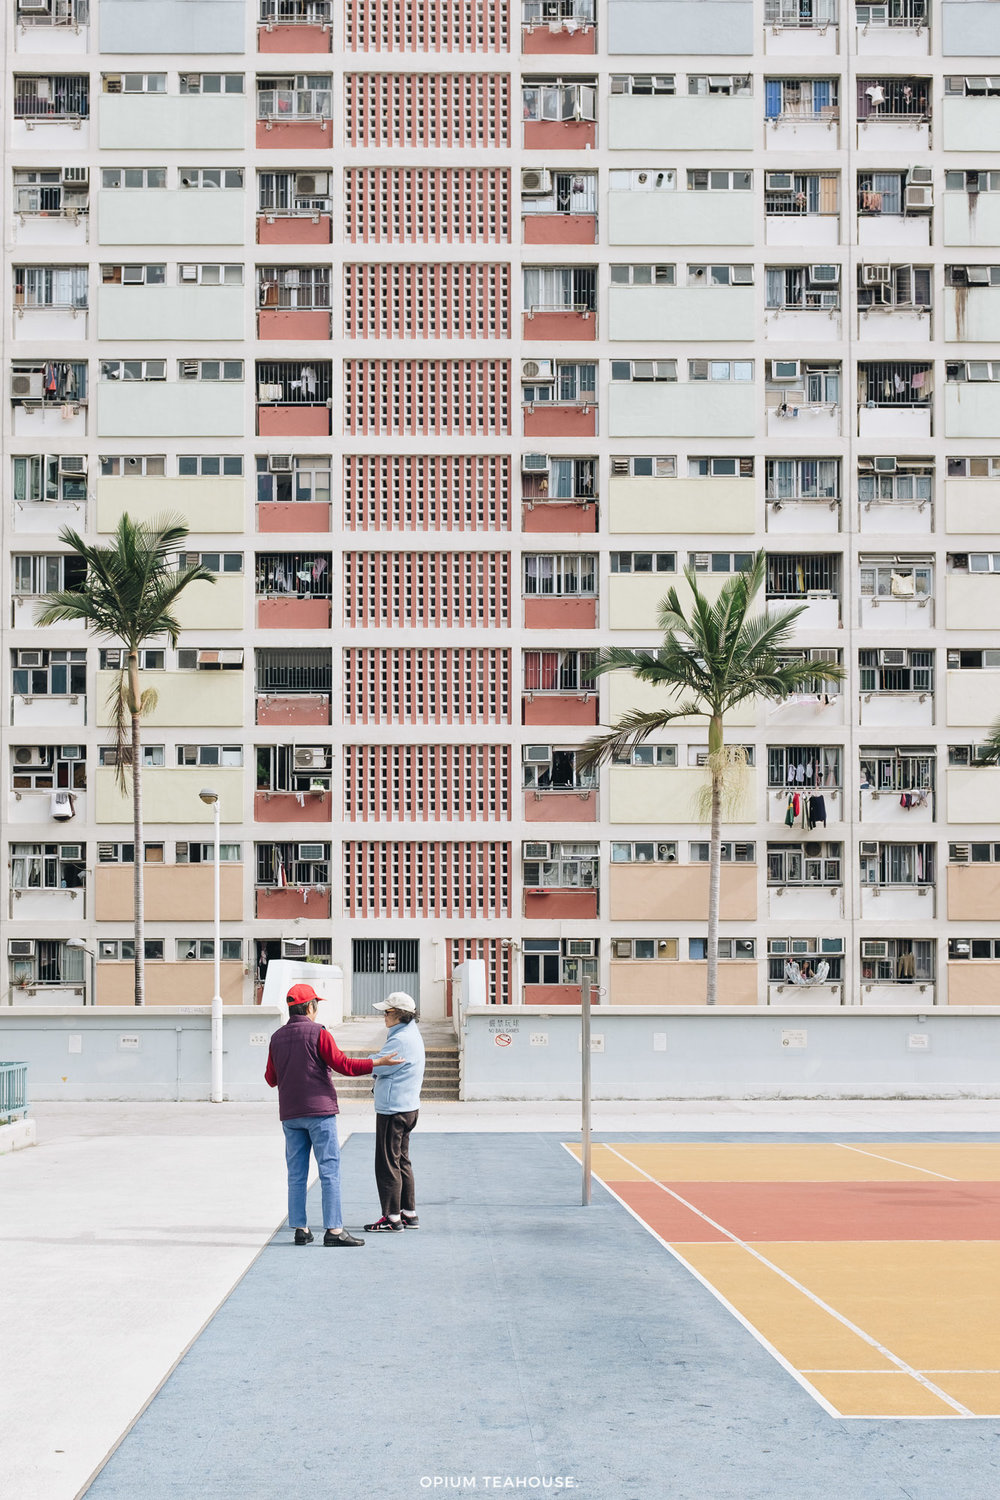 OTH_9621_2017, Choi Hung Estate, Hong Kong.jpg